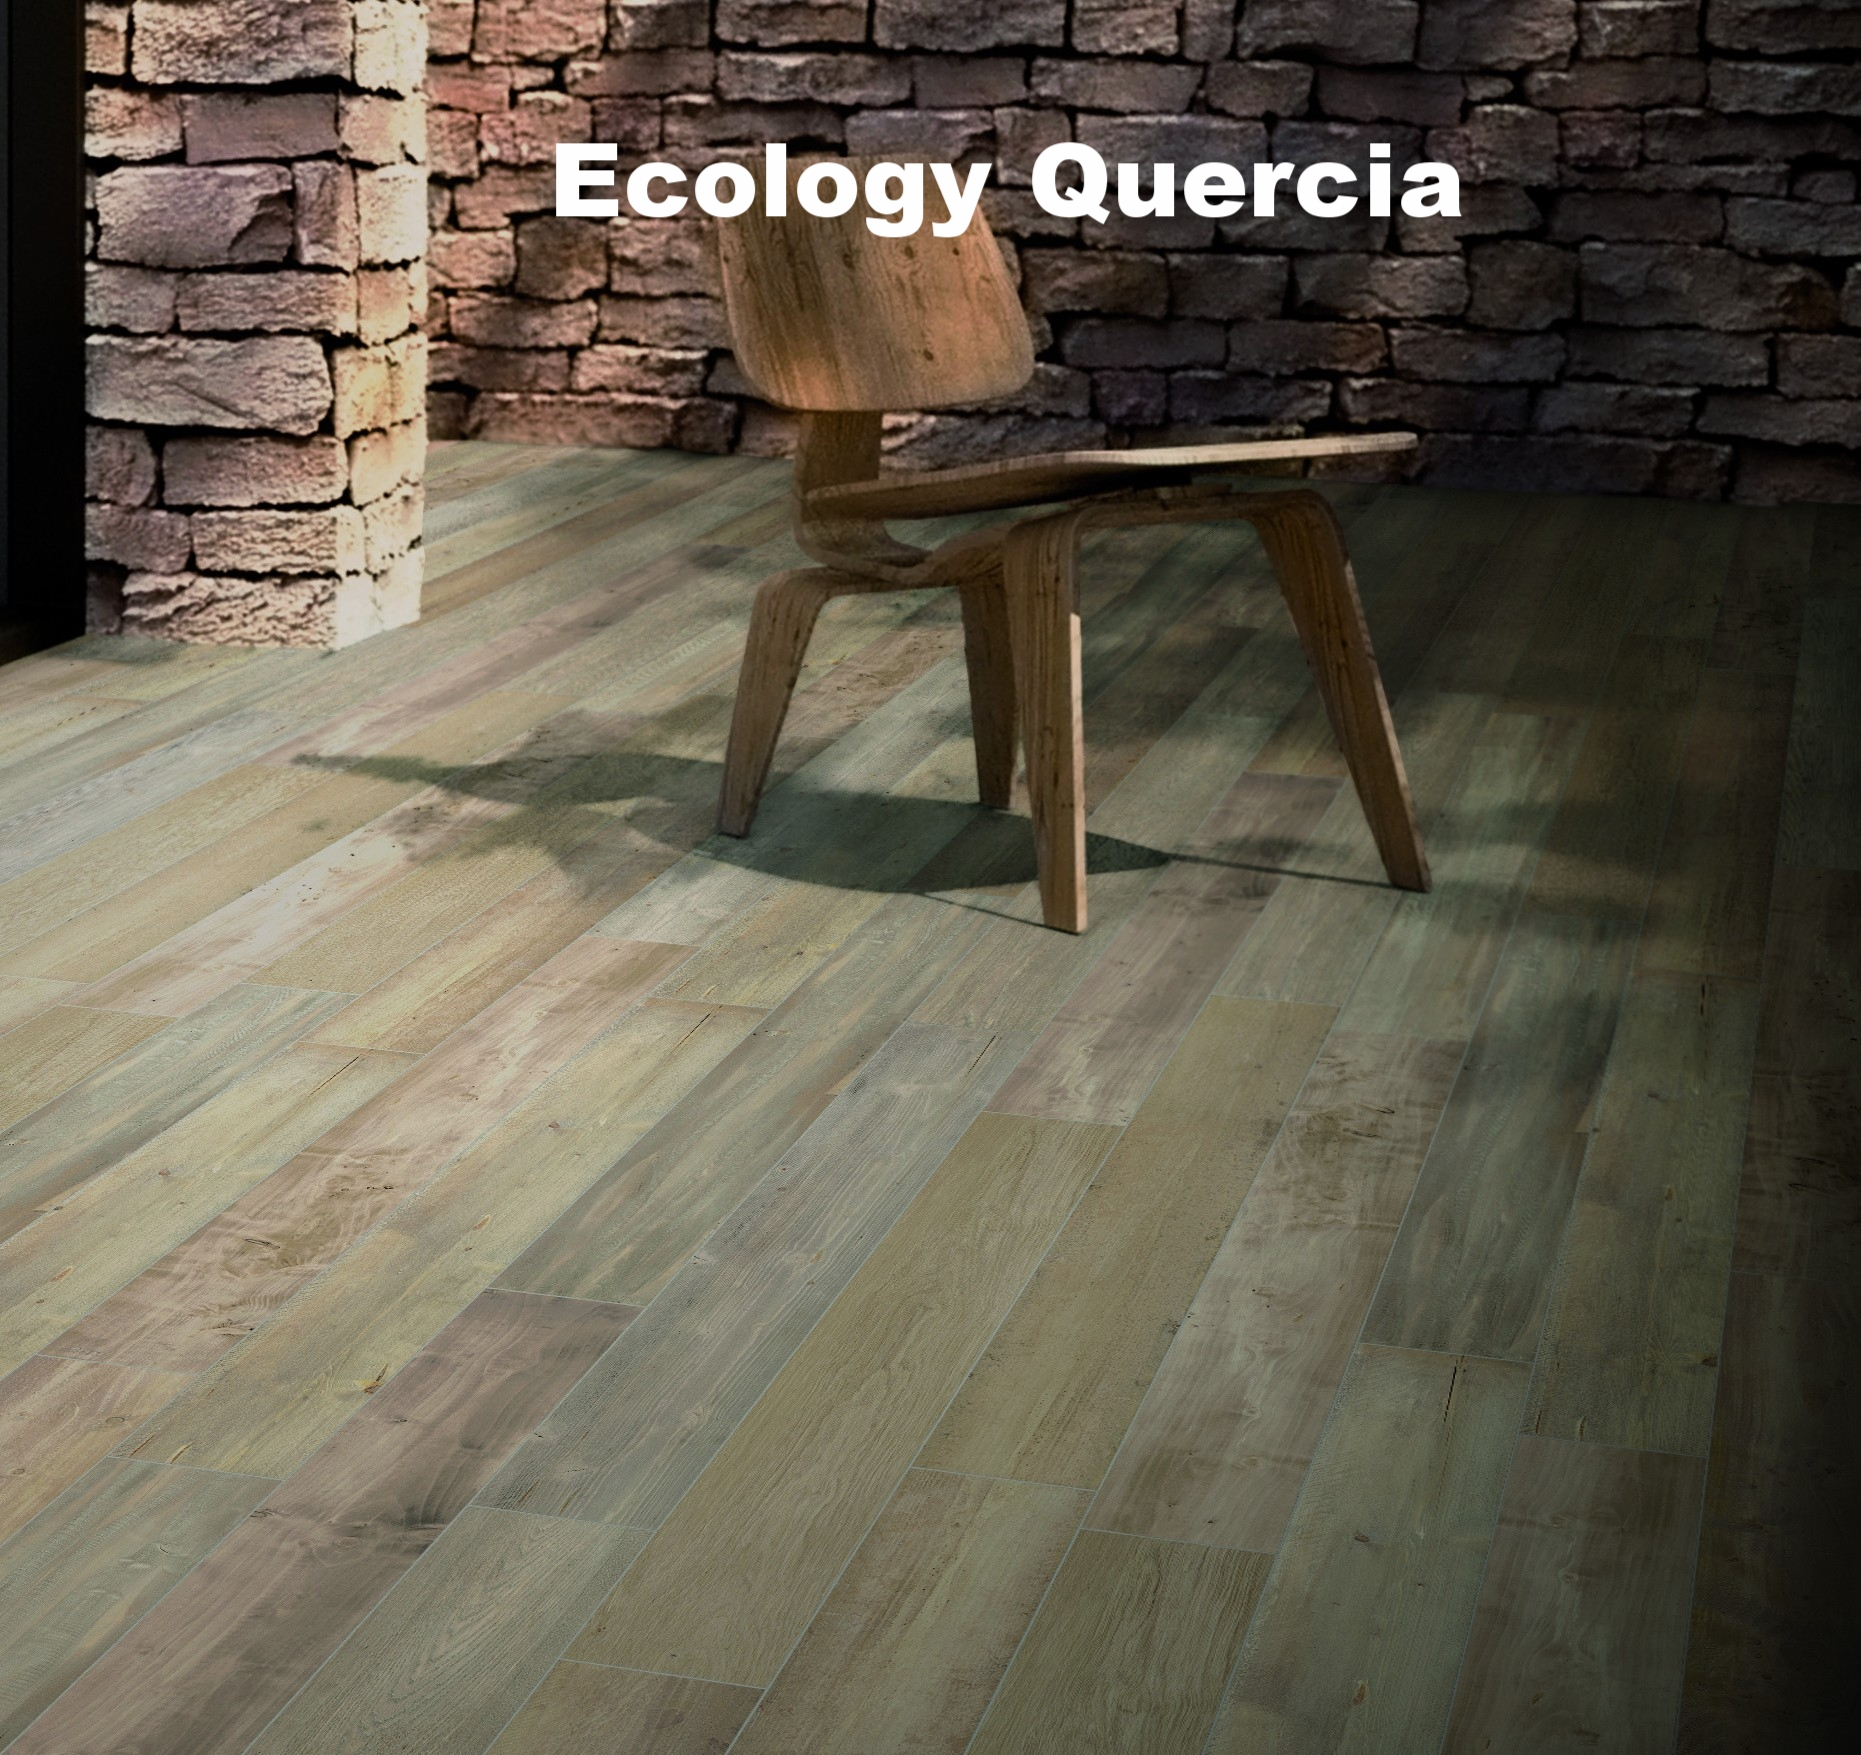 ECOLOGY QUERCIArm.jpg